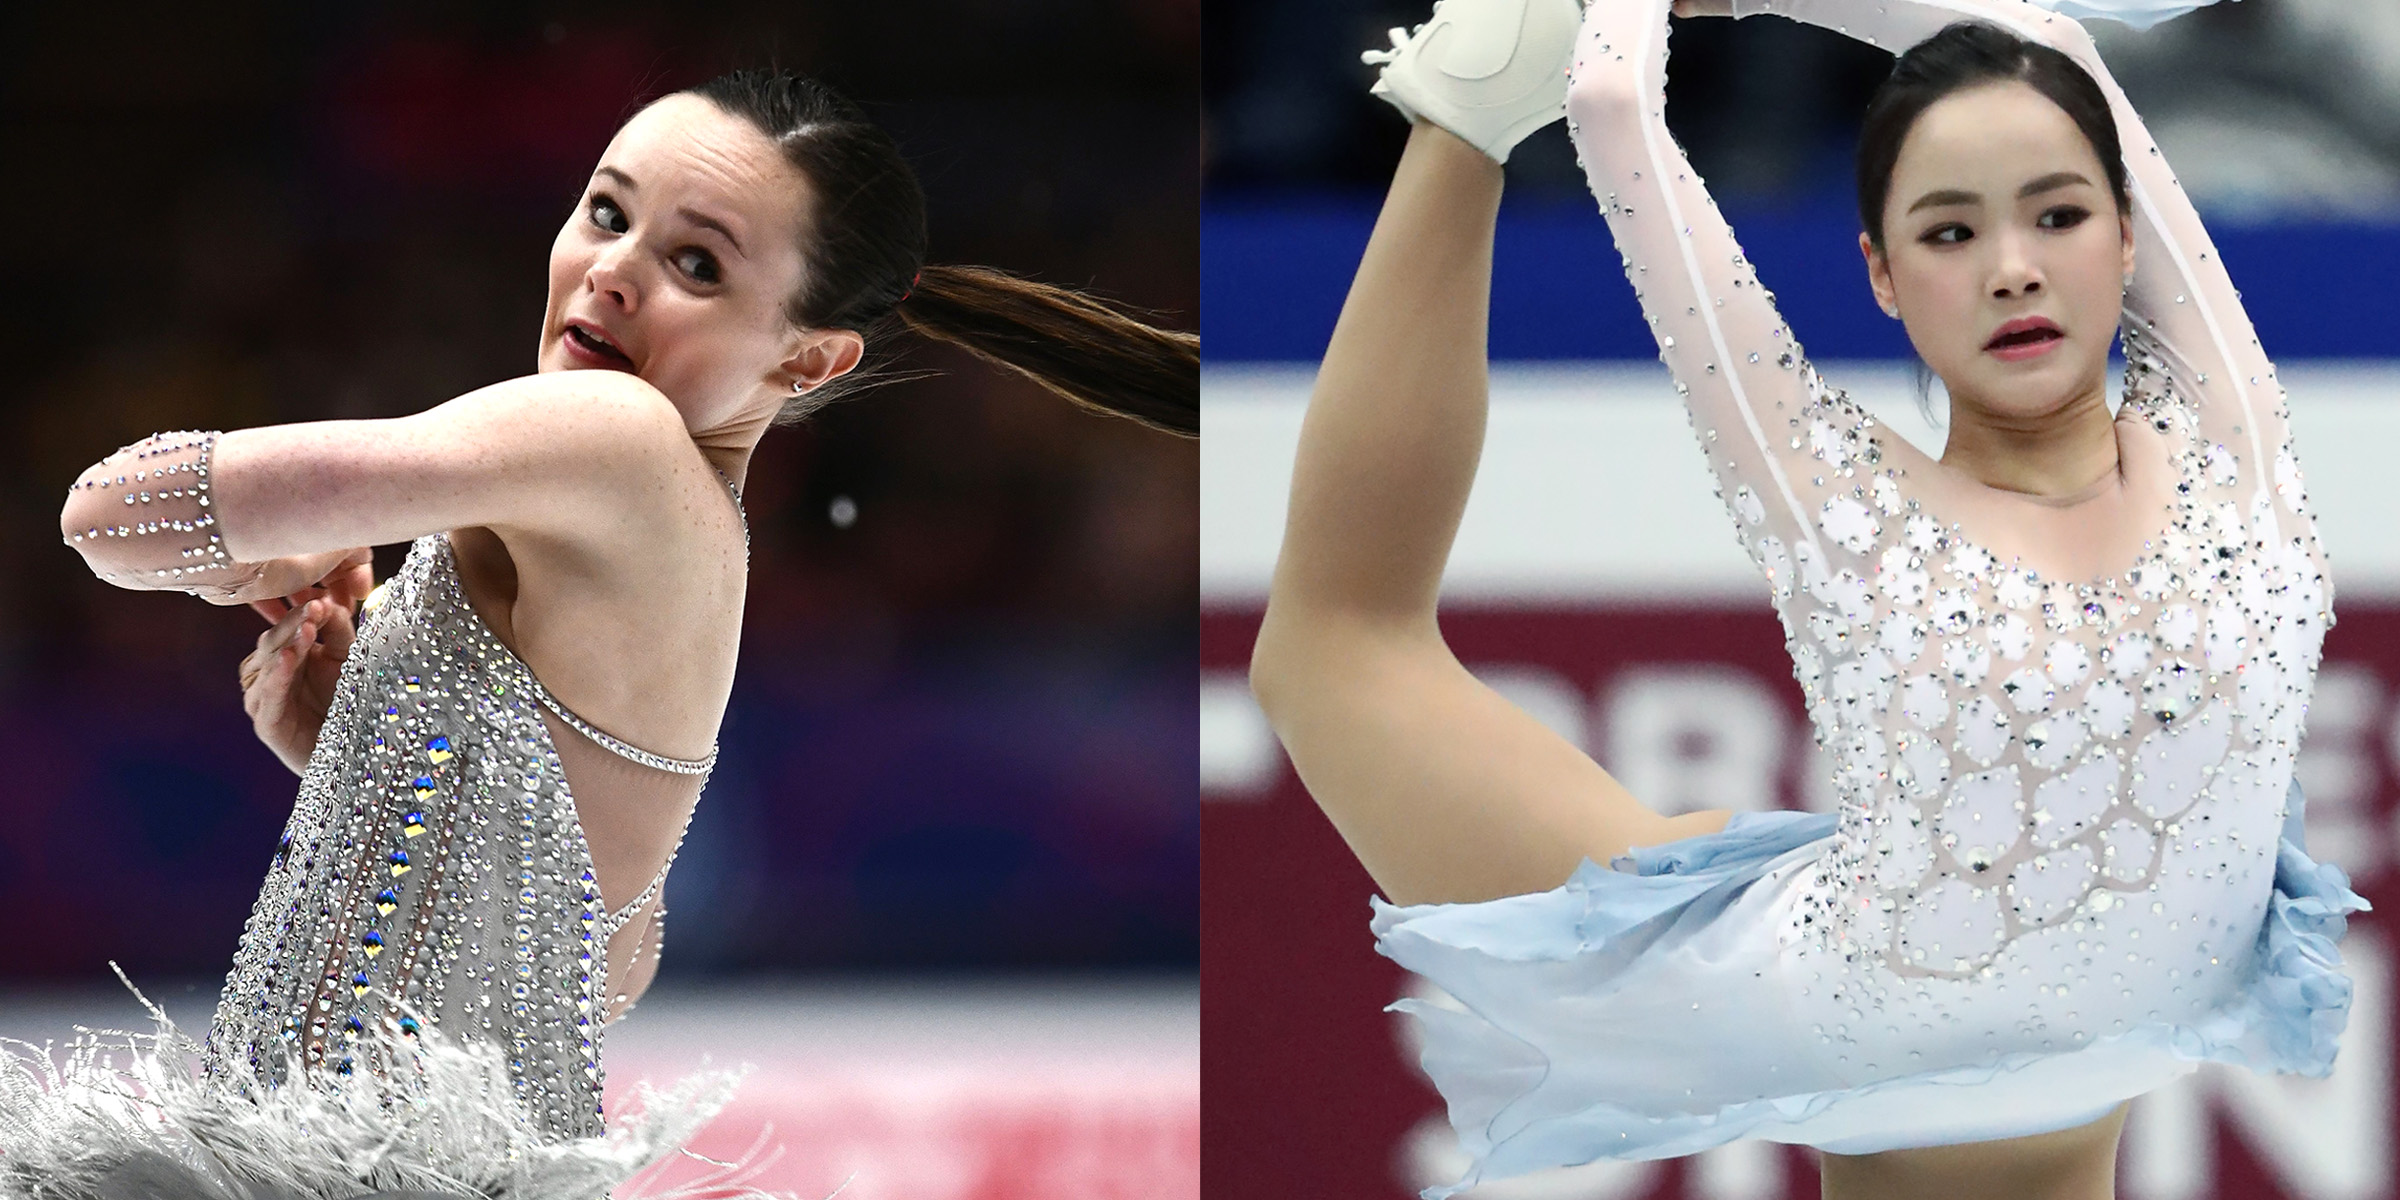 U.S. skater Mariah Bell accused of intentionally slashing rival with her skate